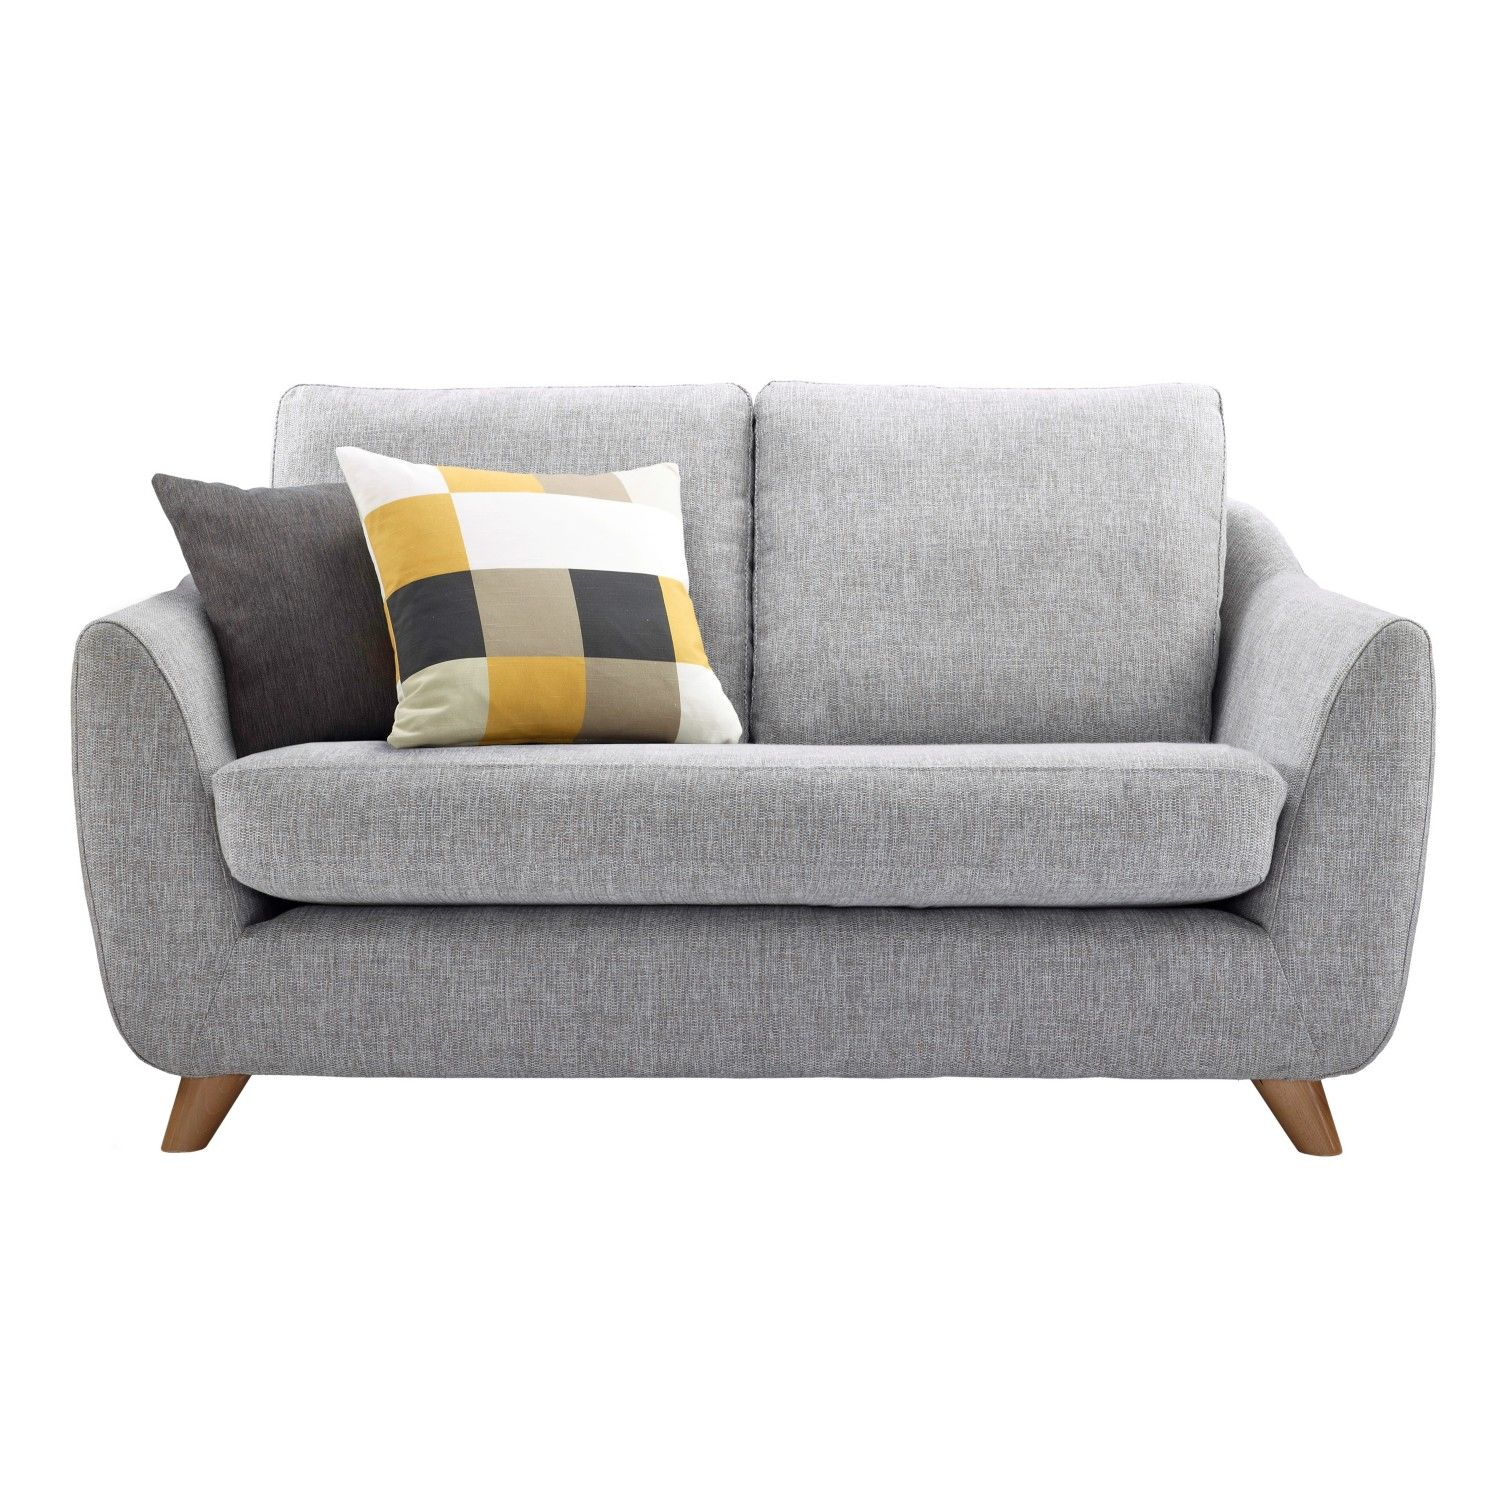 small sofa bed loveseats for small spaces | cheap small sofa decoration : fascinating grey XOEBEWD